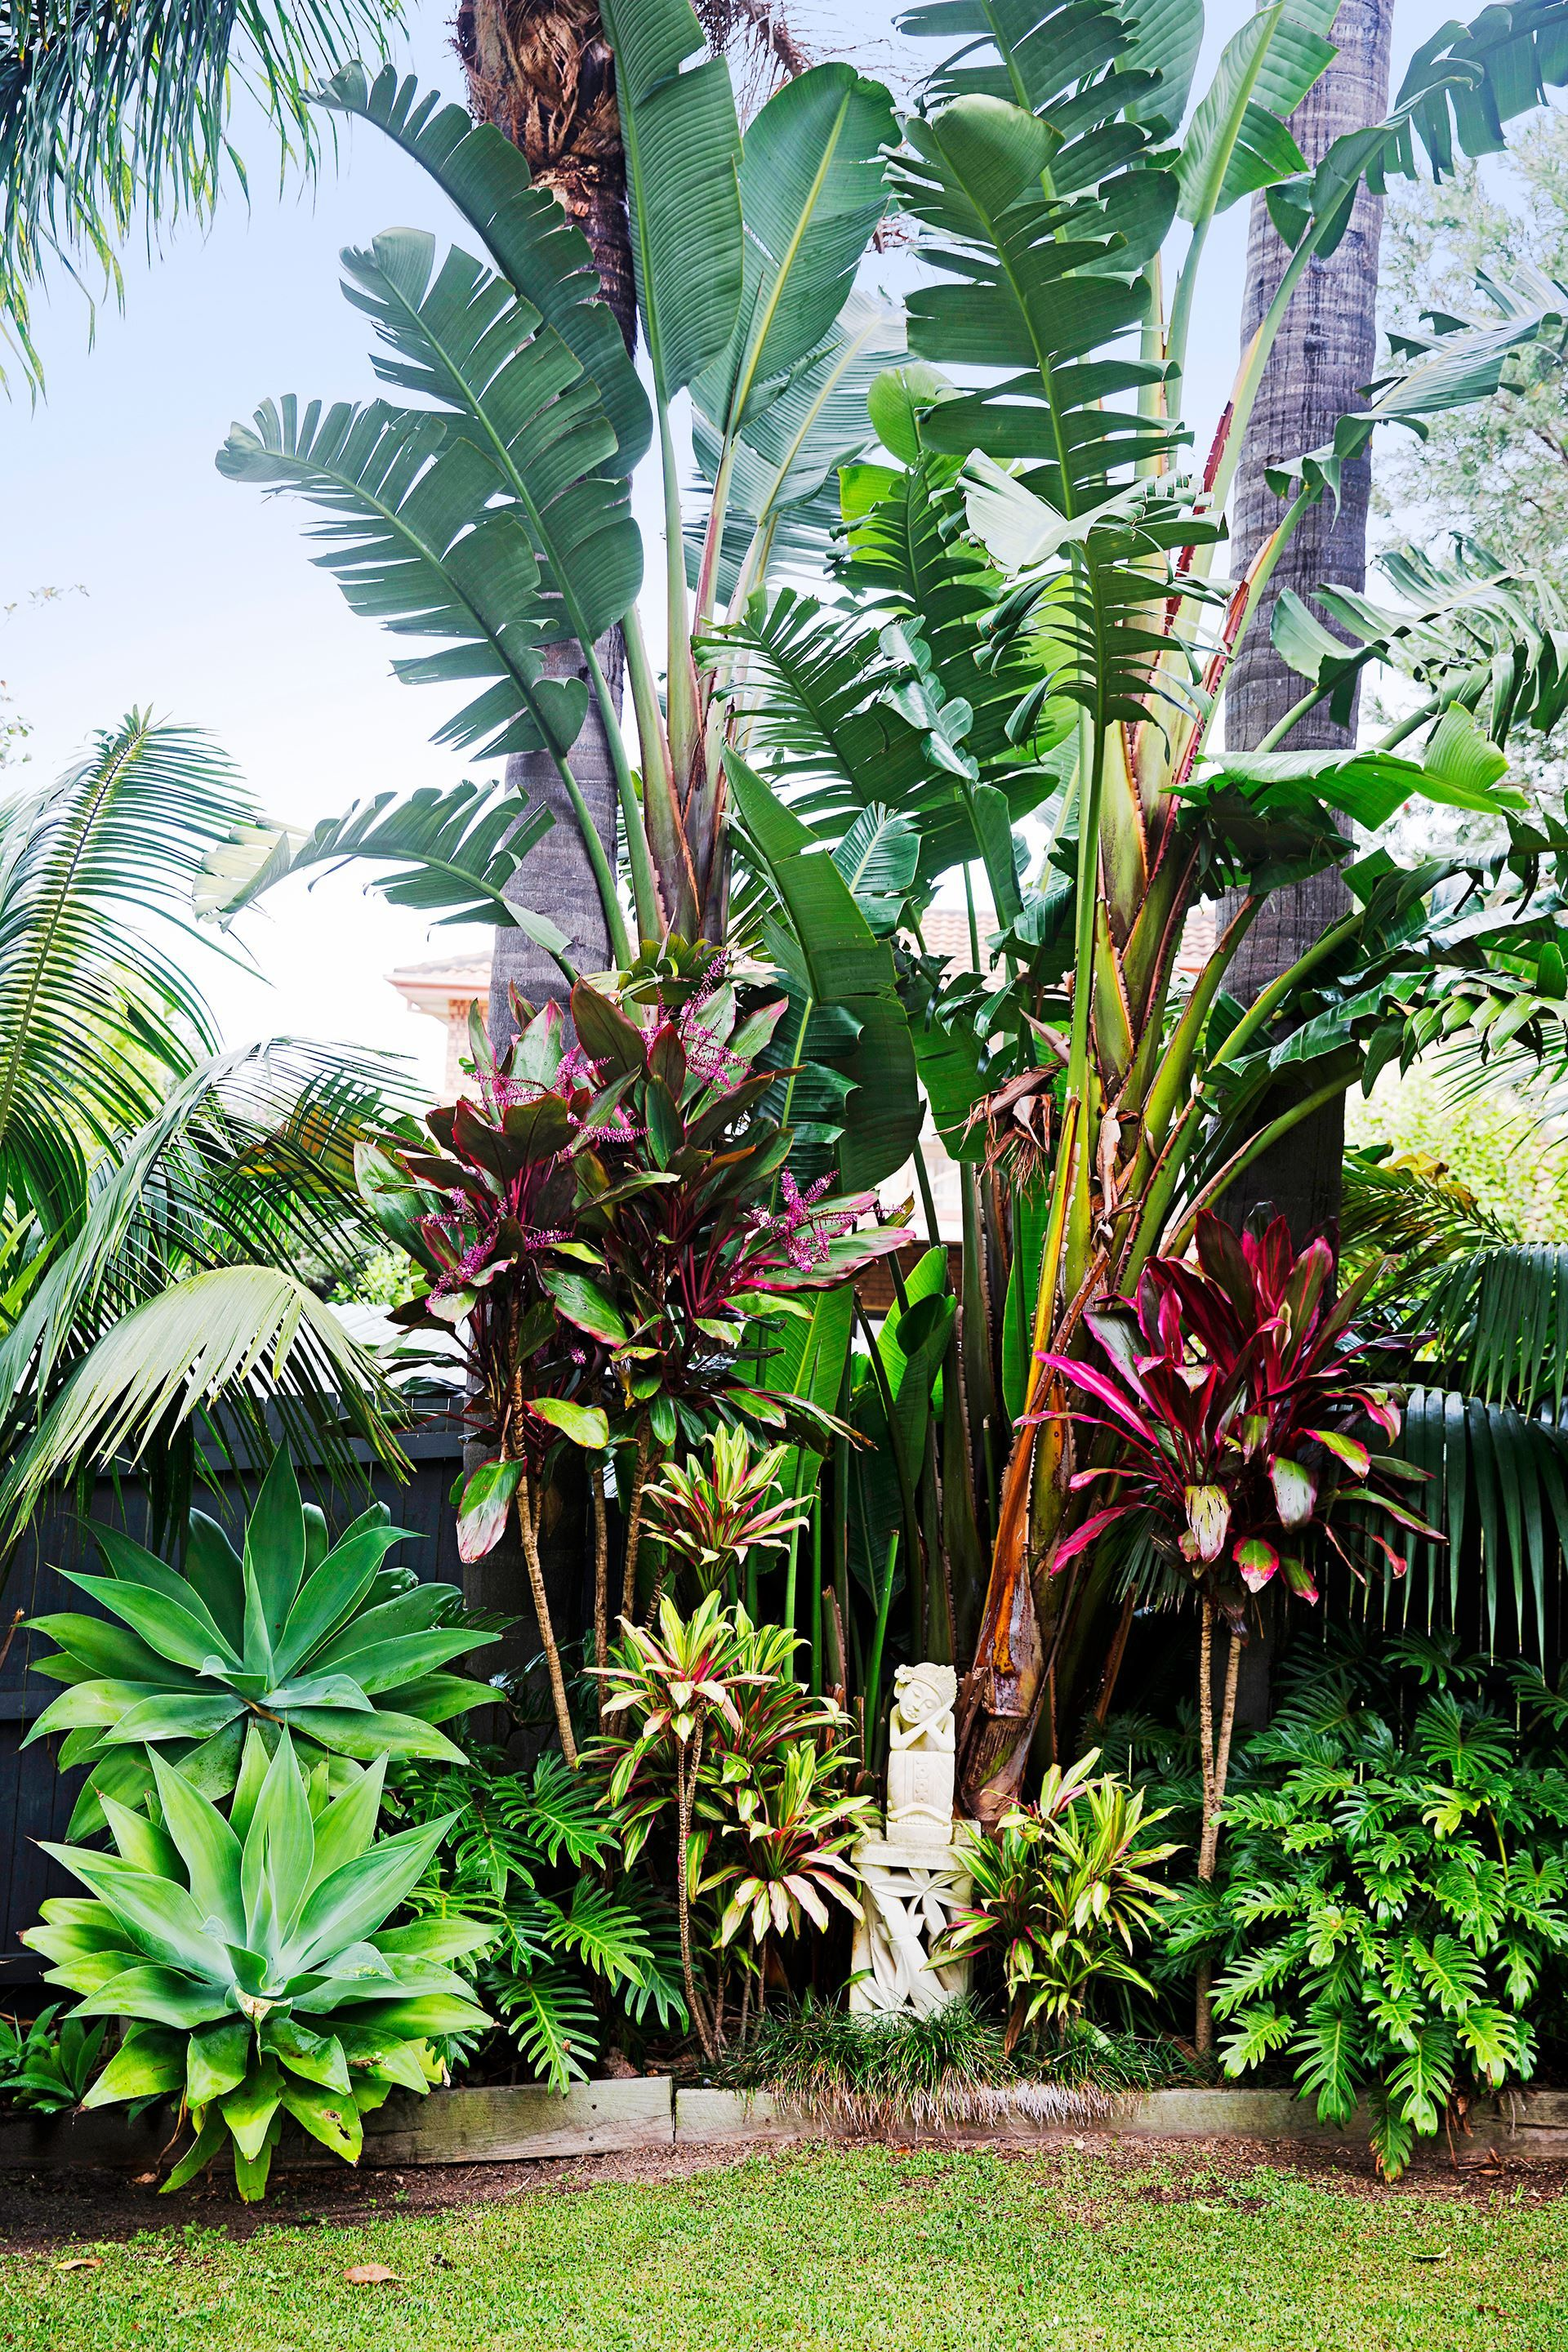 Tropical garden photo